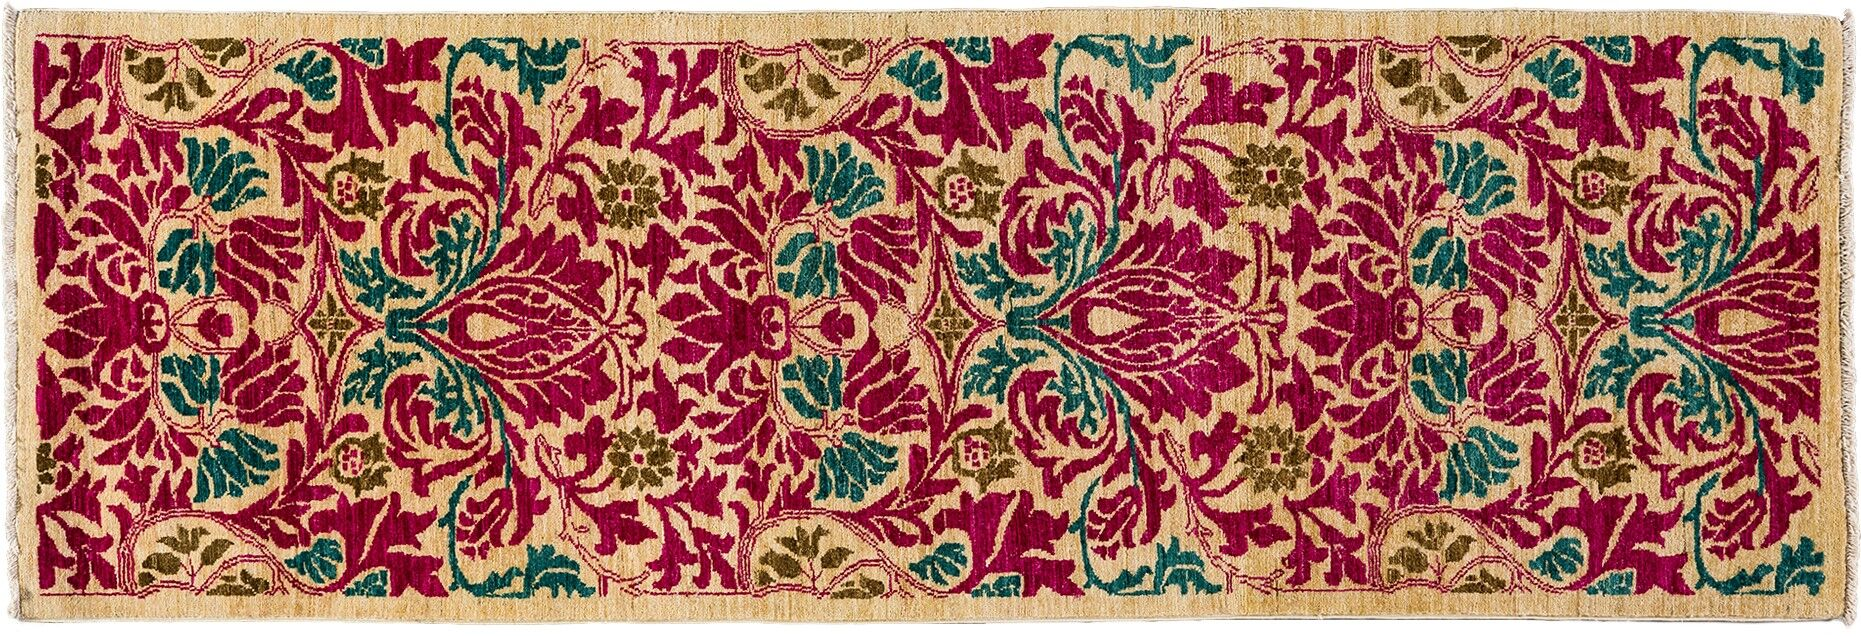 One-of-a-Kind Arts and Crafts Hand-Knotted Pink Area Rug Rug Size: Runner 2'8